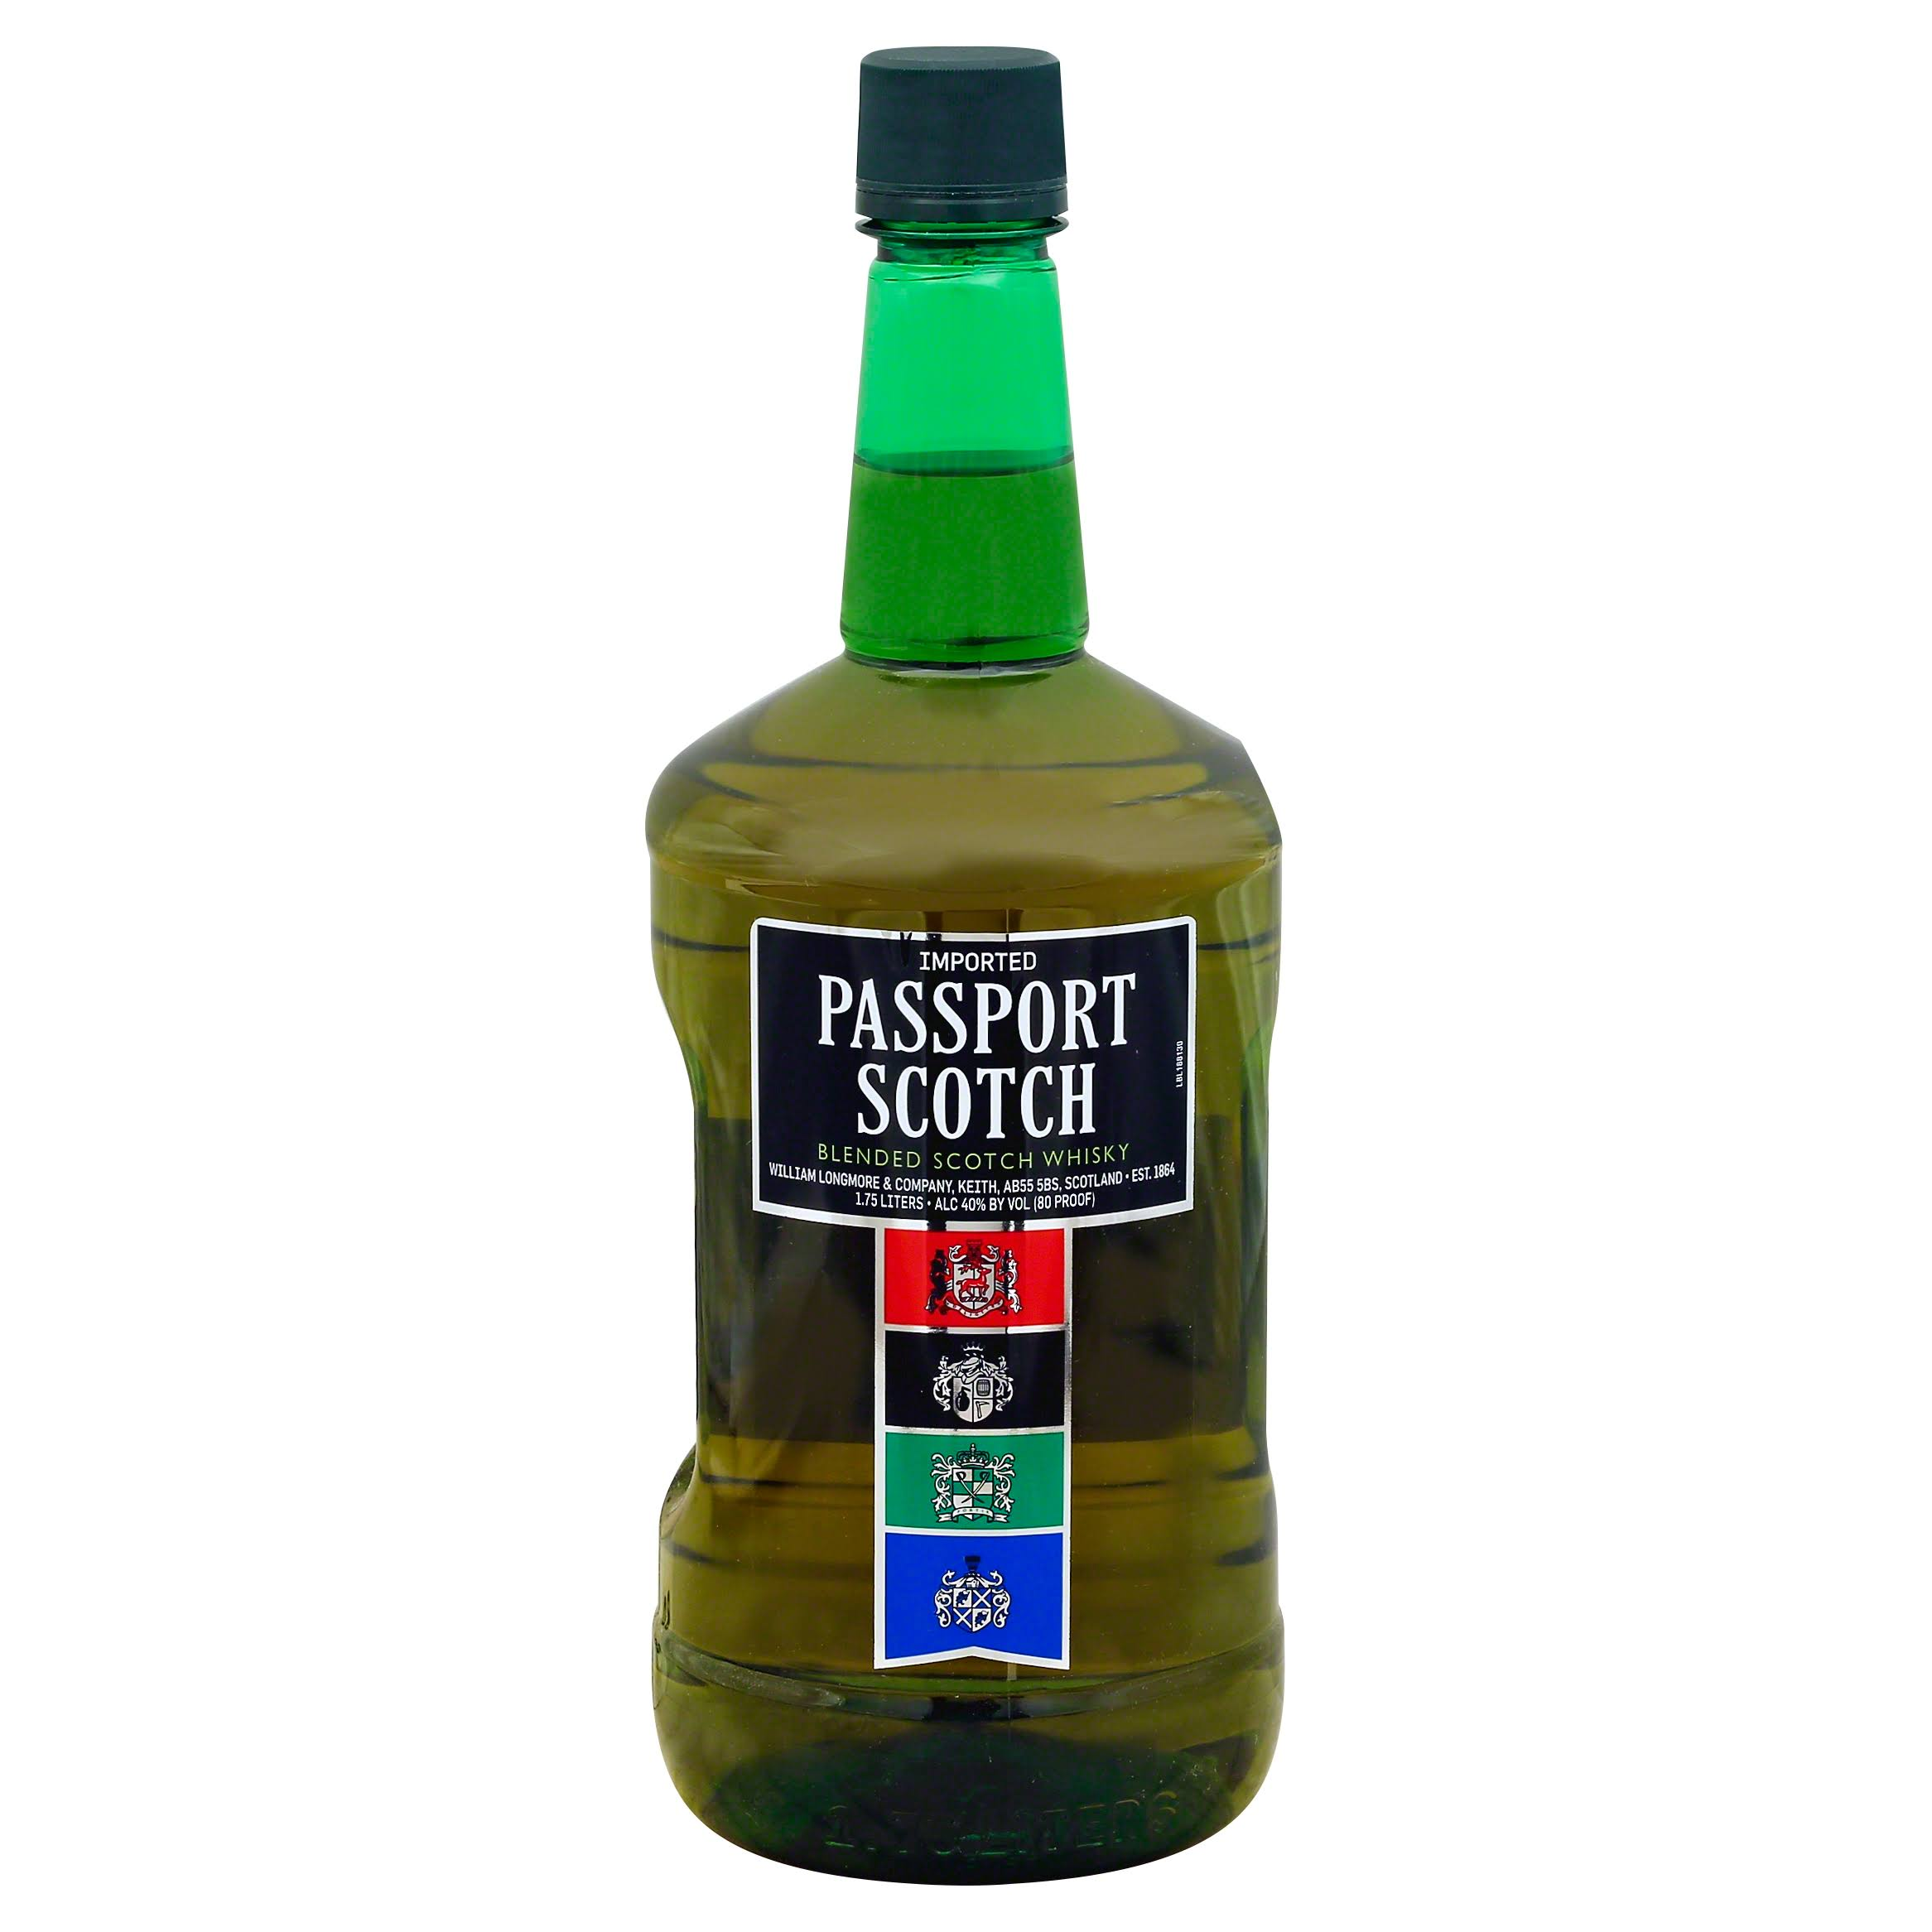 Passport Scotch Blended Scotch Whisky - 1.75l